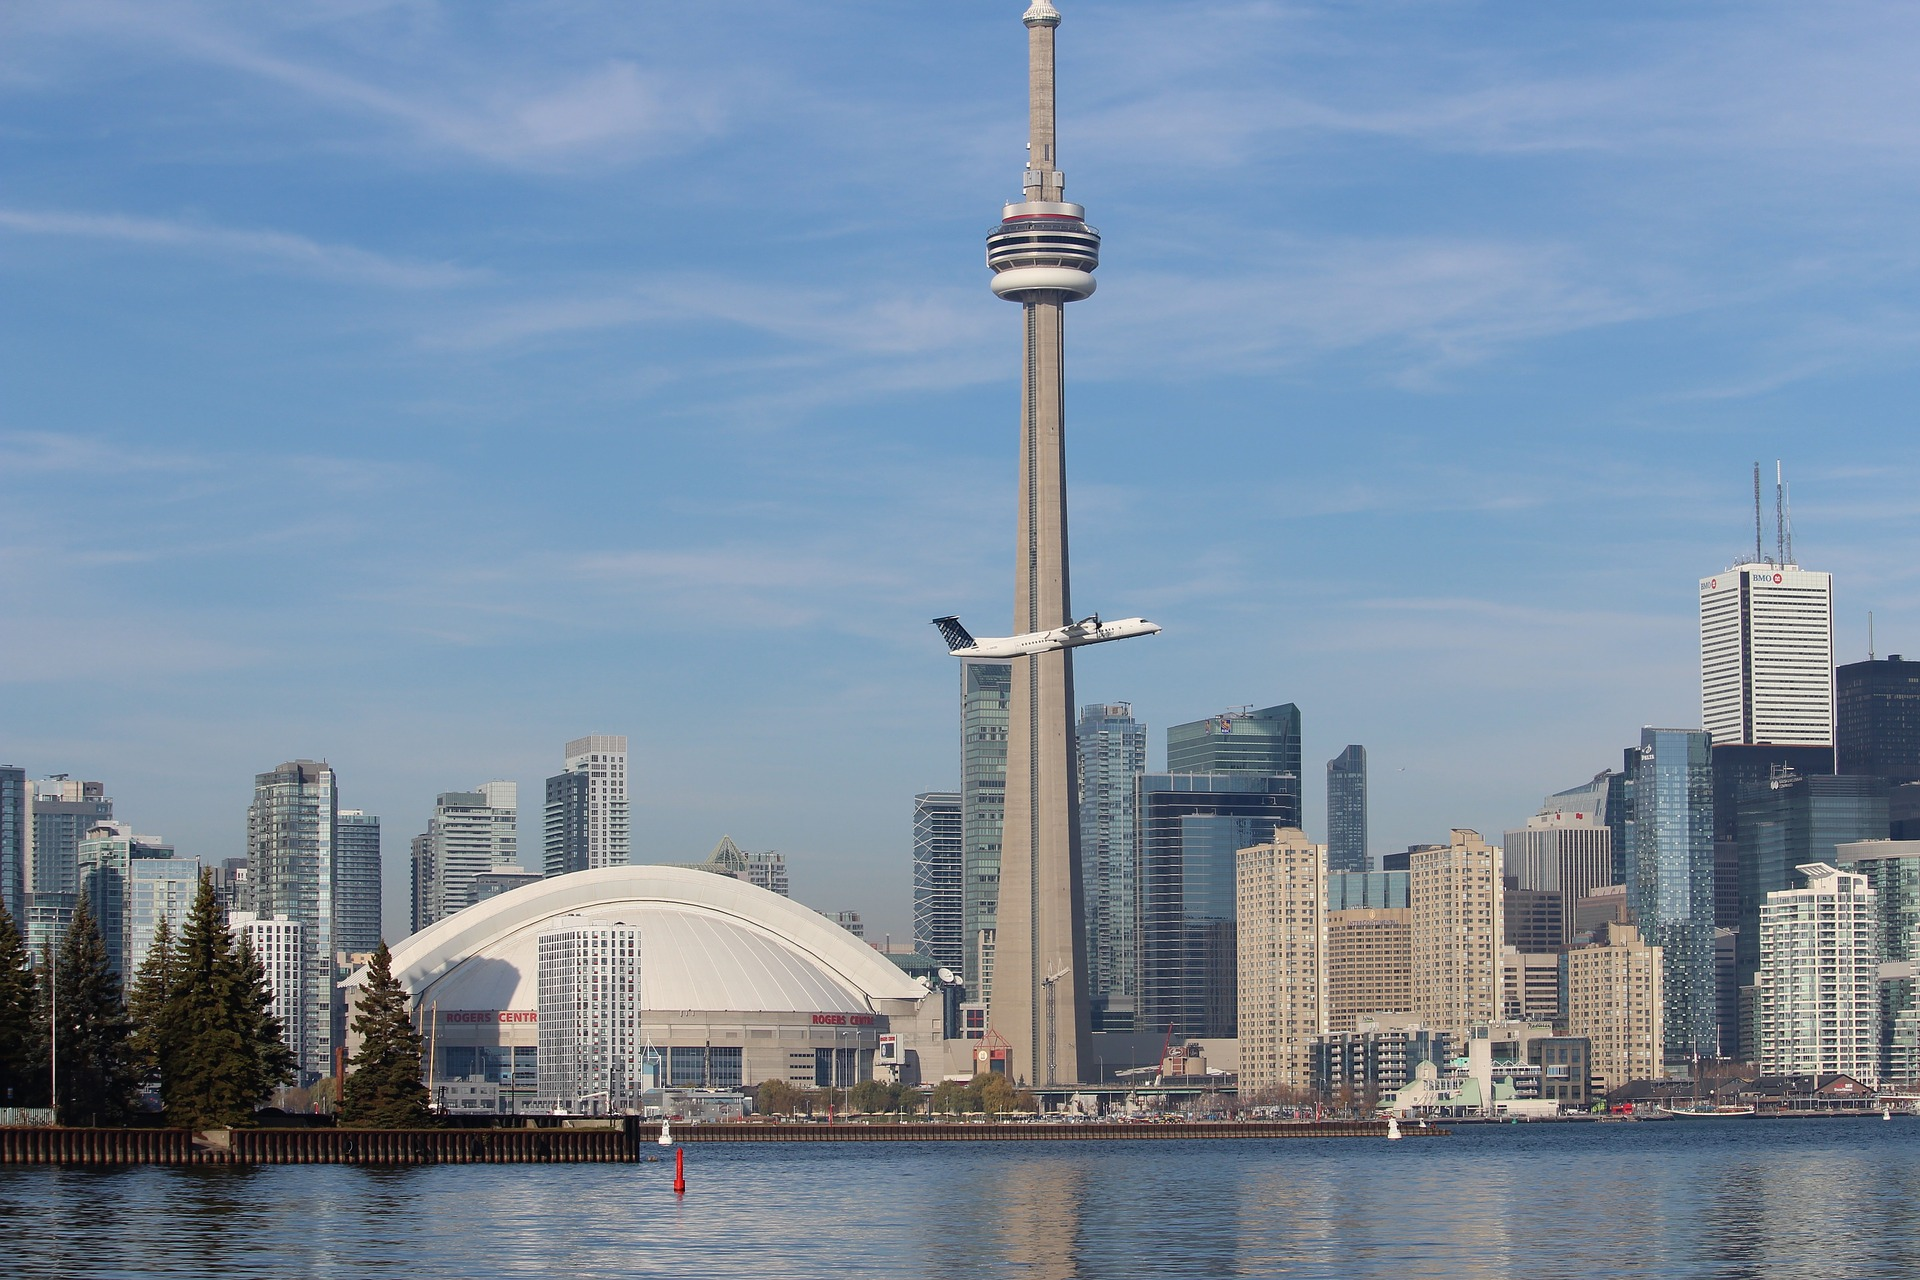 Economic arguments make the case for Toronto's world class status